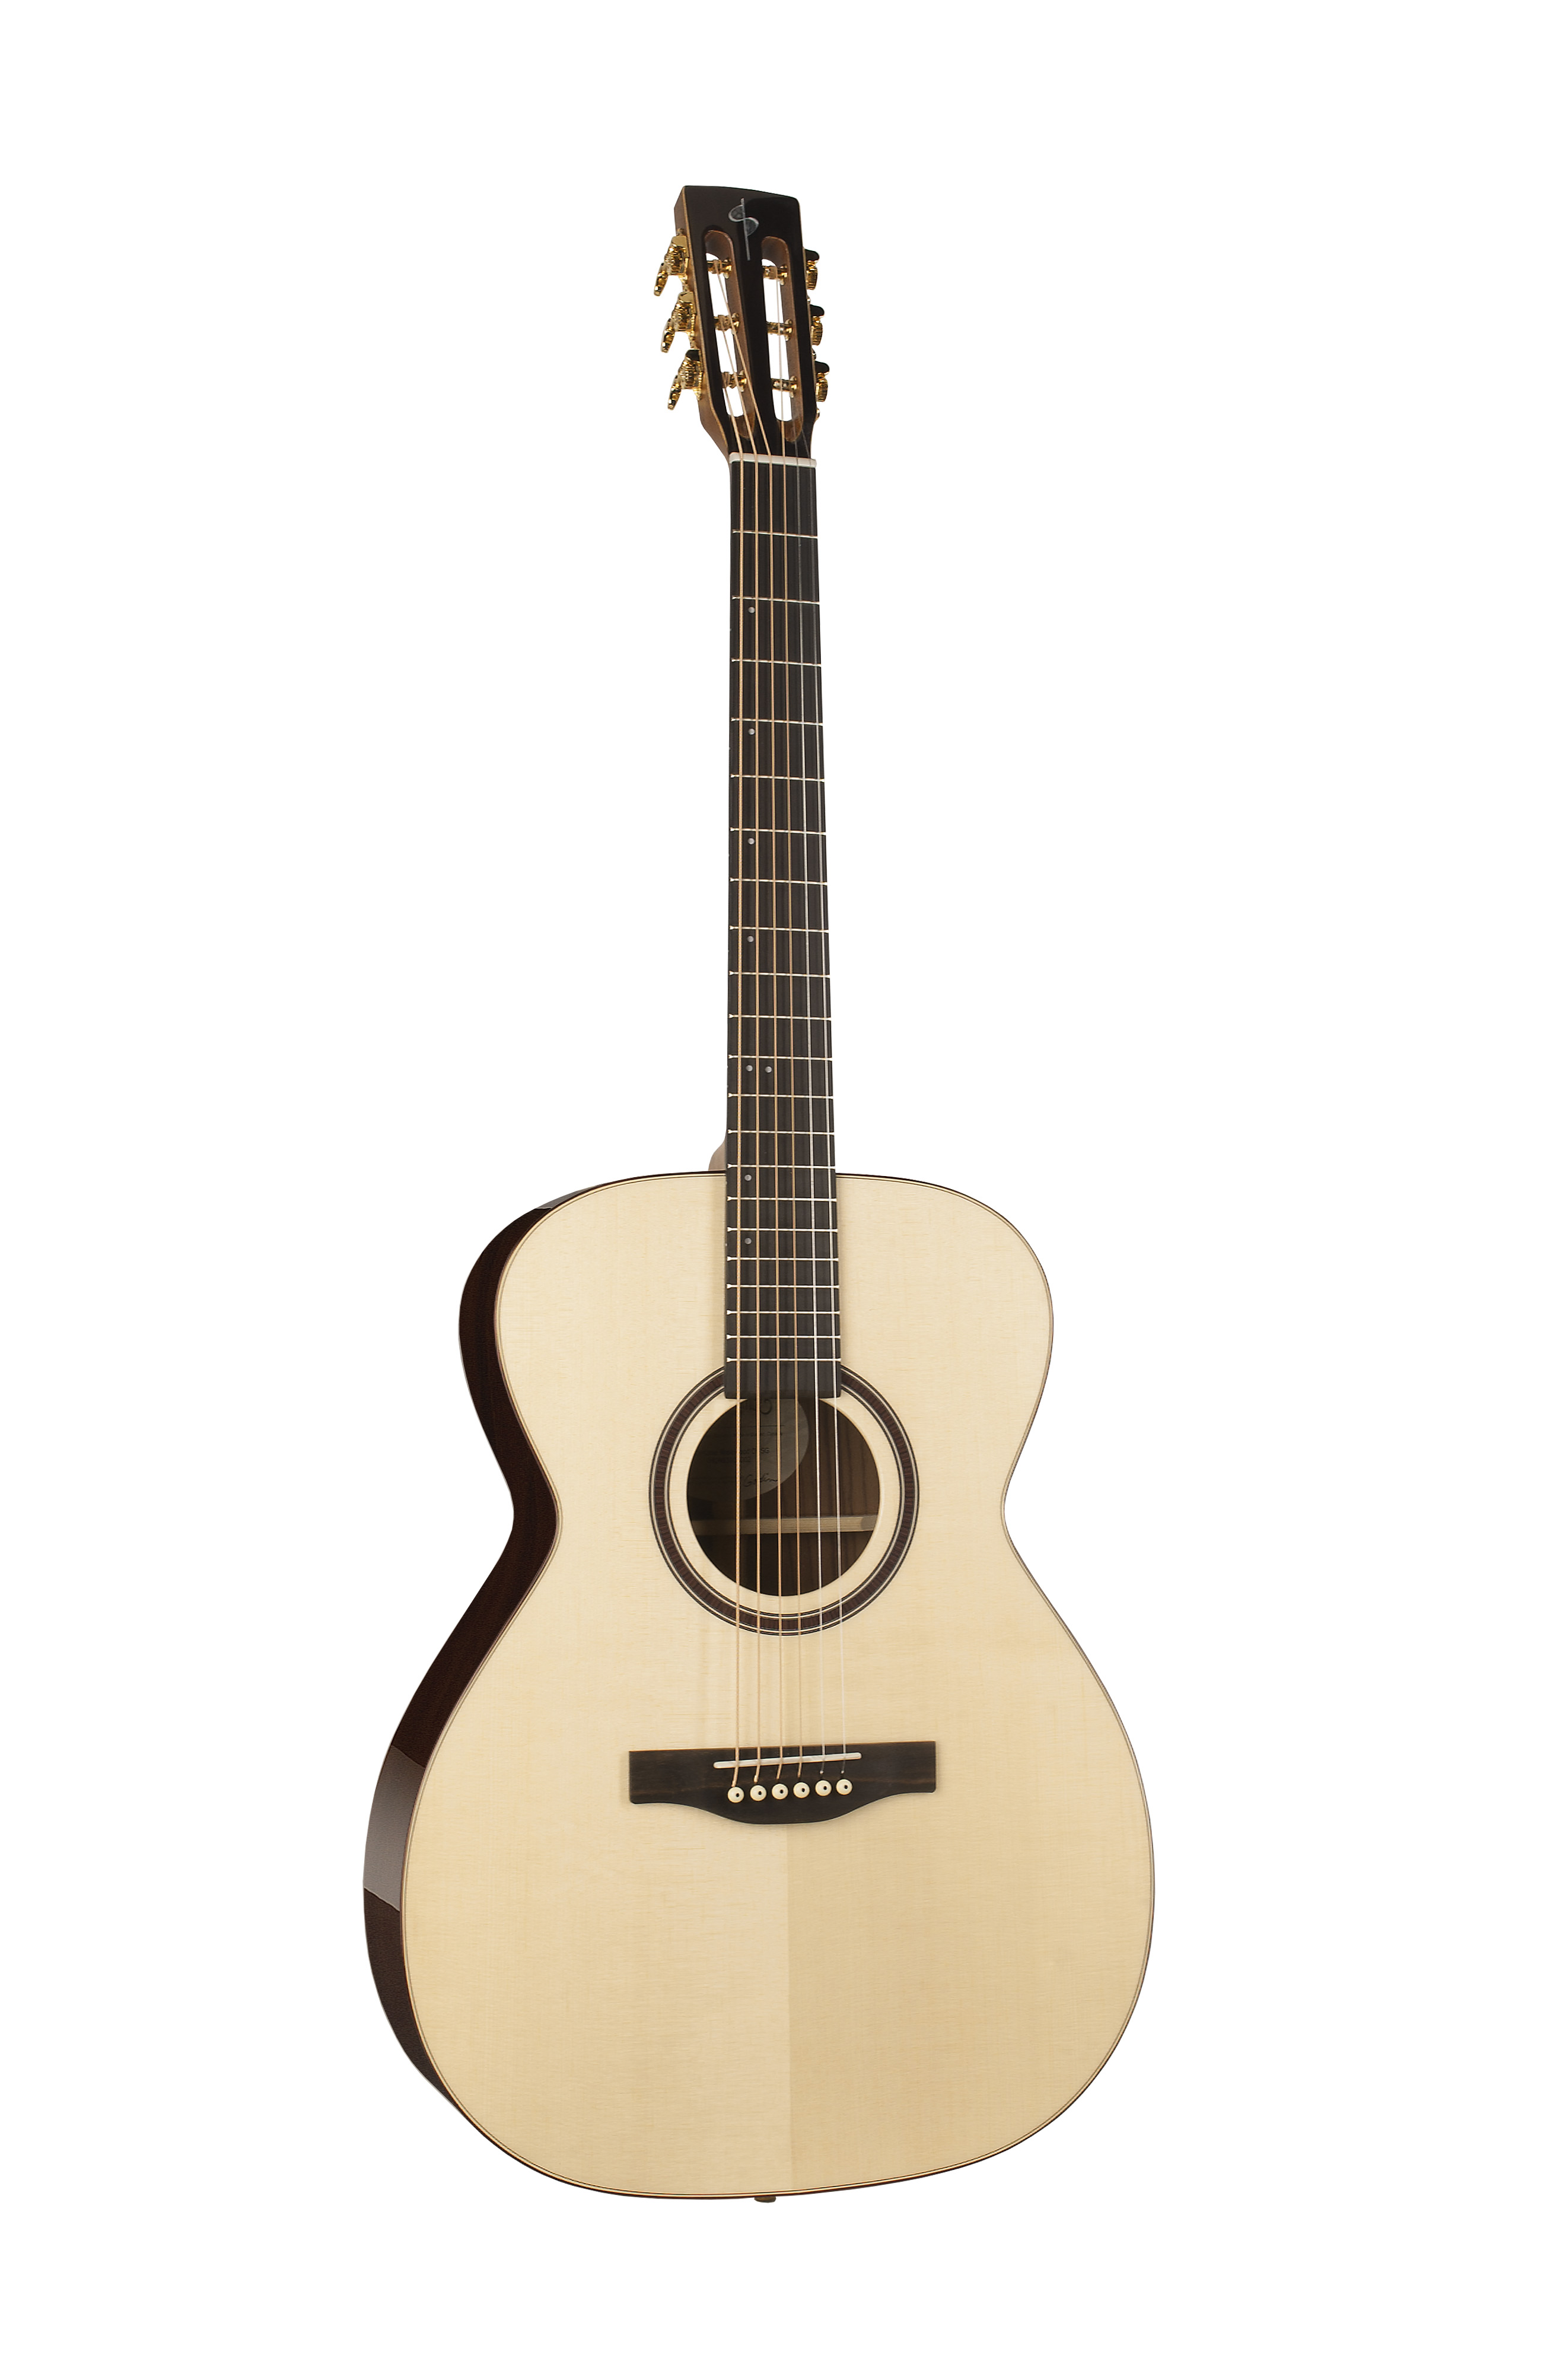 Simon & Patrick 40483 Showcase Rosewood Concert Hall Acoustic Guitar